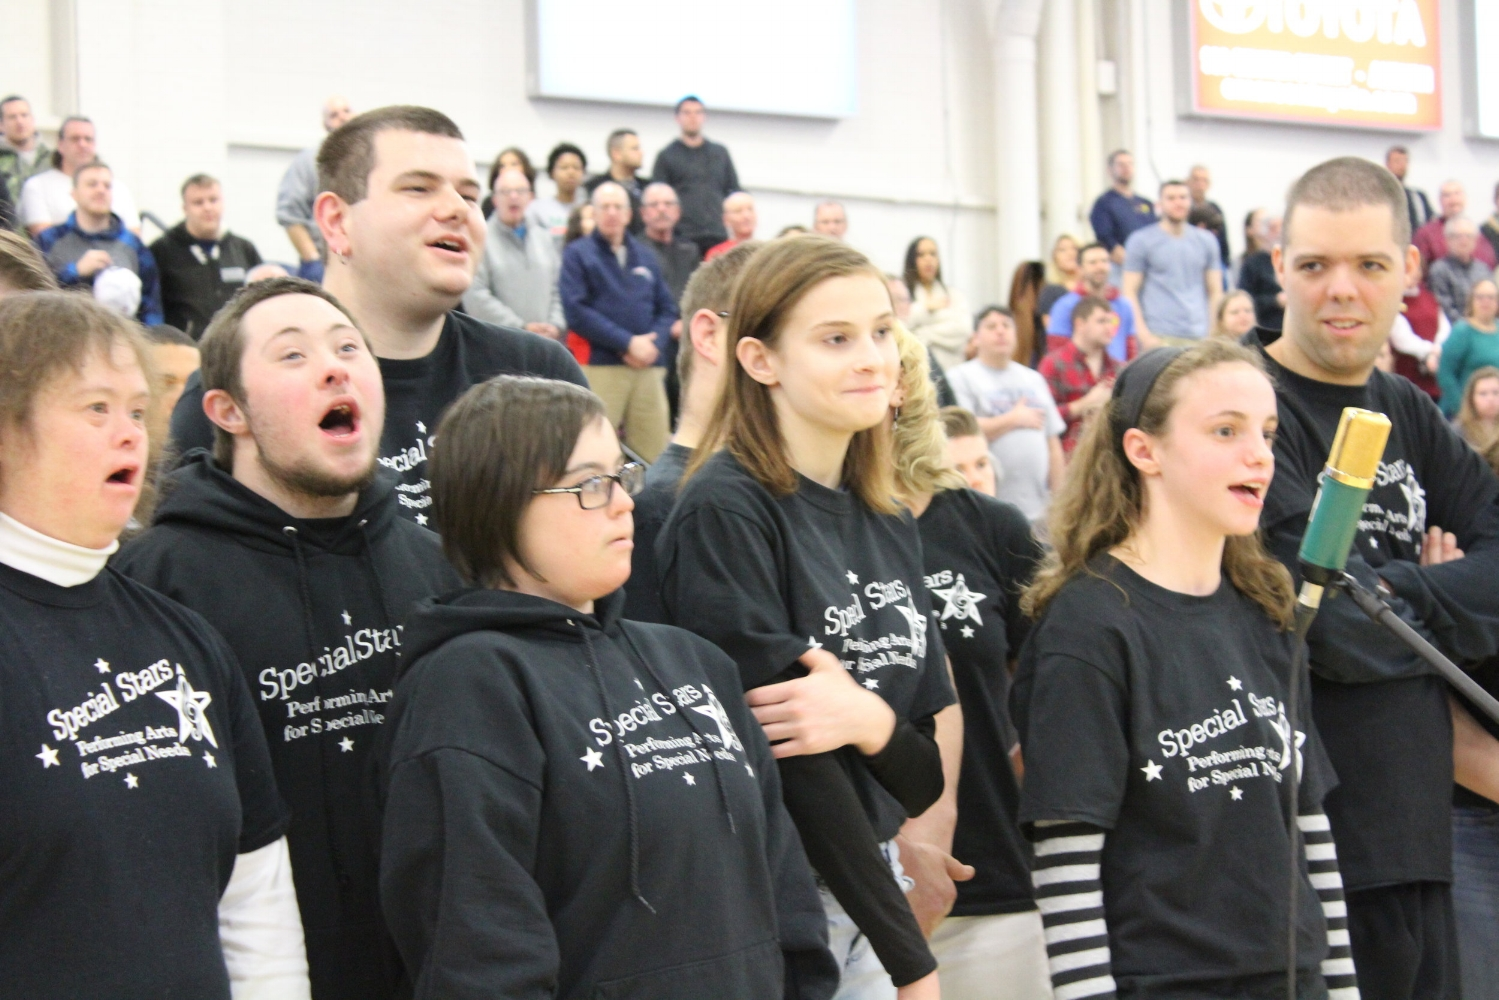 Special Stars students perform the National Anthem at the Maine Red Claws game